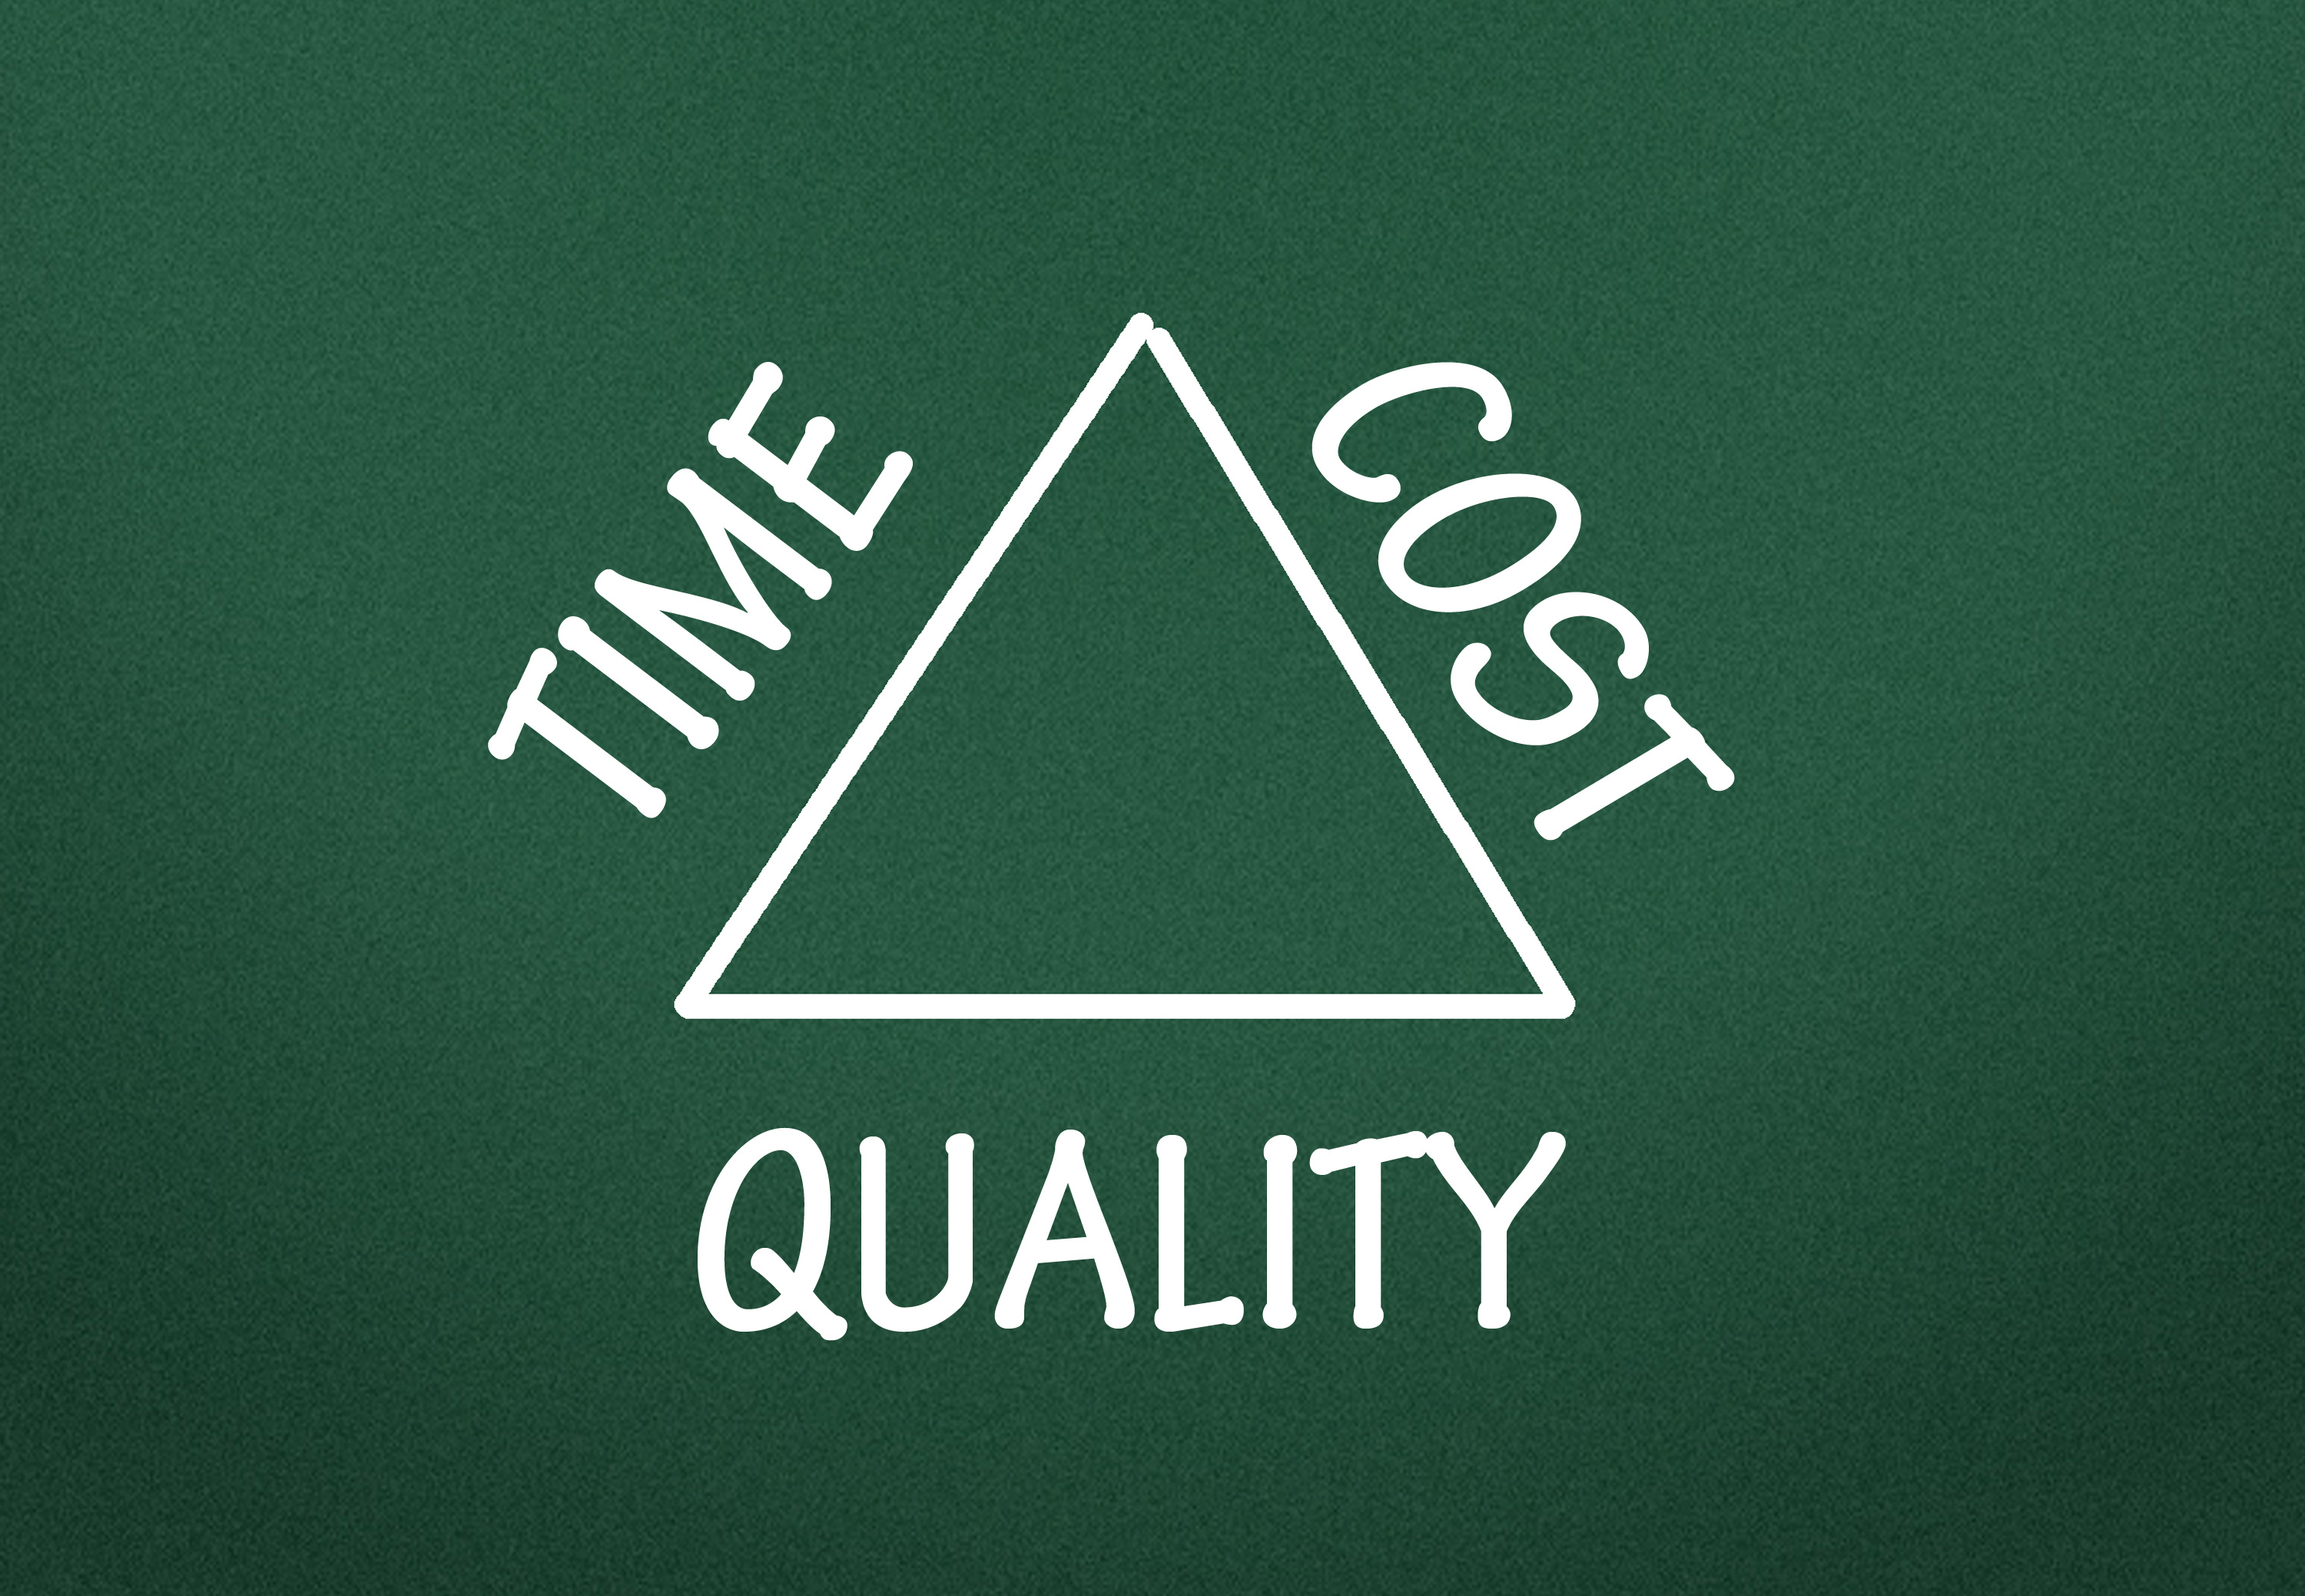 Time & cost and quality symbol